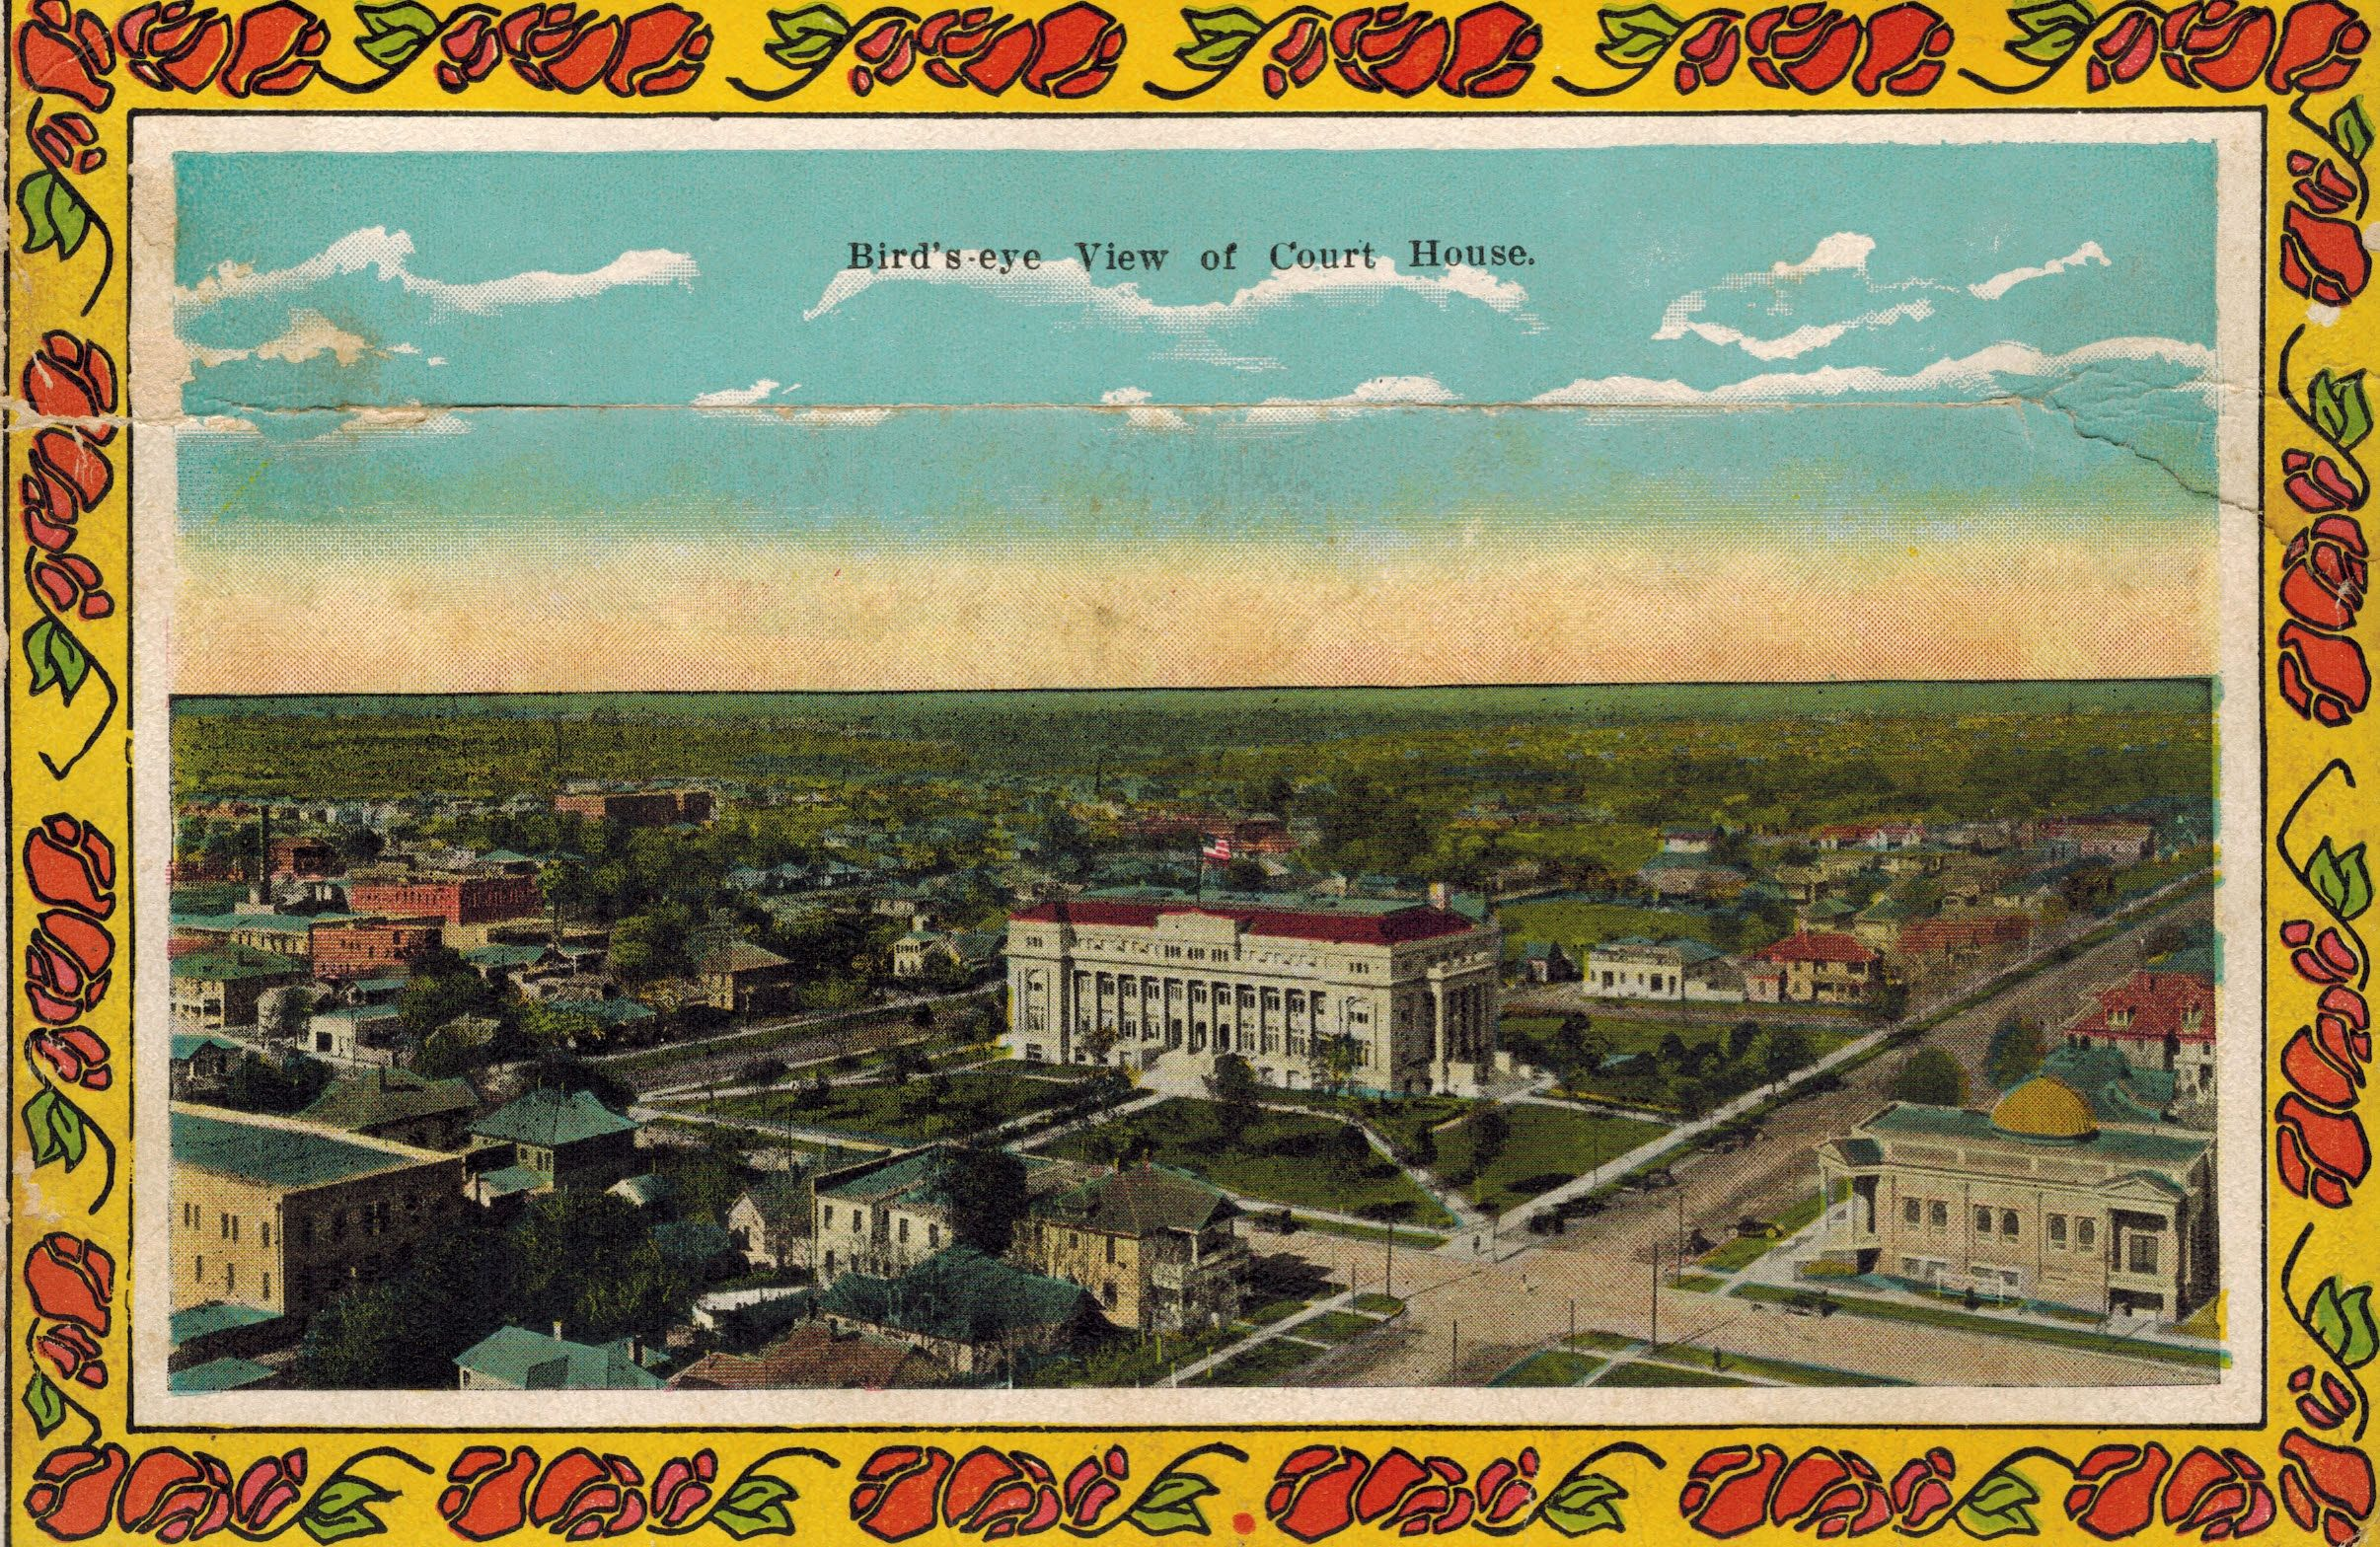 Birdseye view of courthouse from wichita falls texas